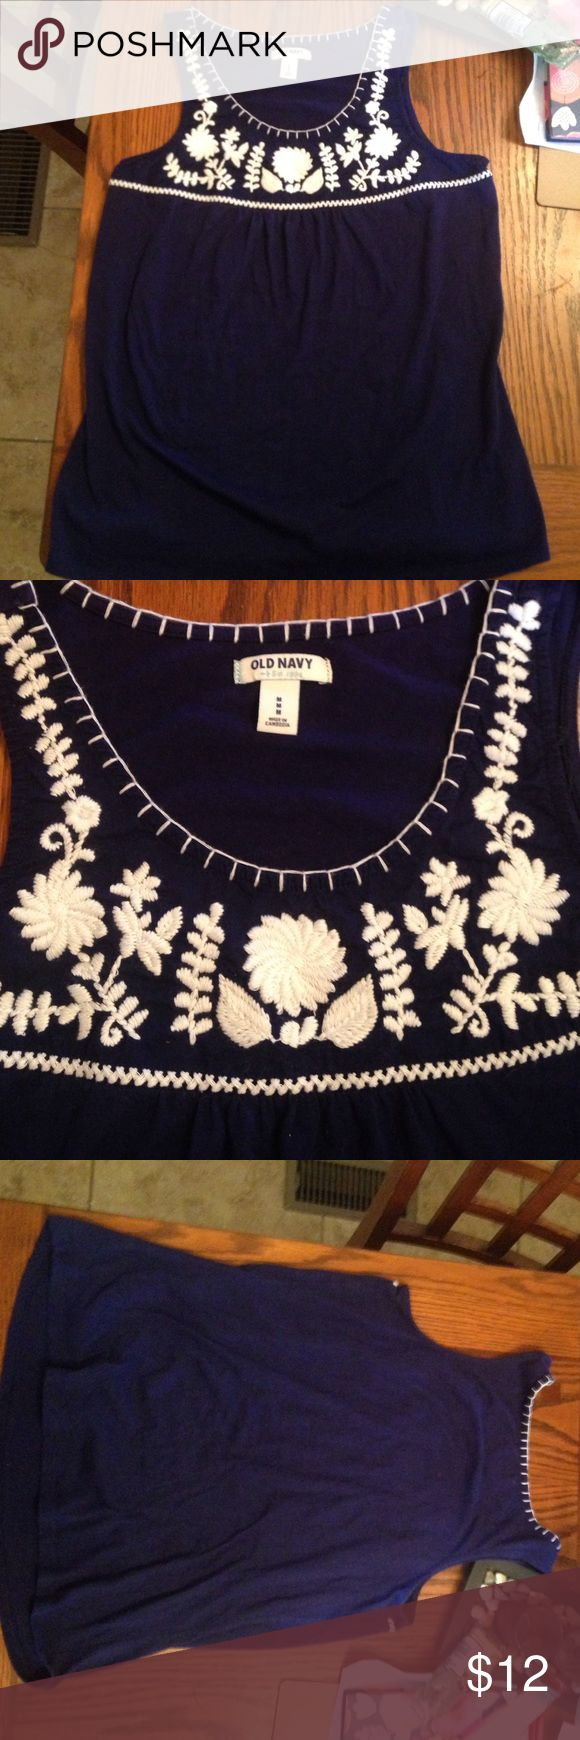 Old Navy Women's Top! Size Medium. Beautiful embroidery. Perfect condition. Old Navy Tops Blouses